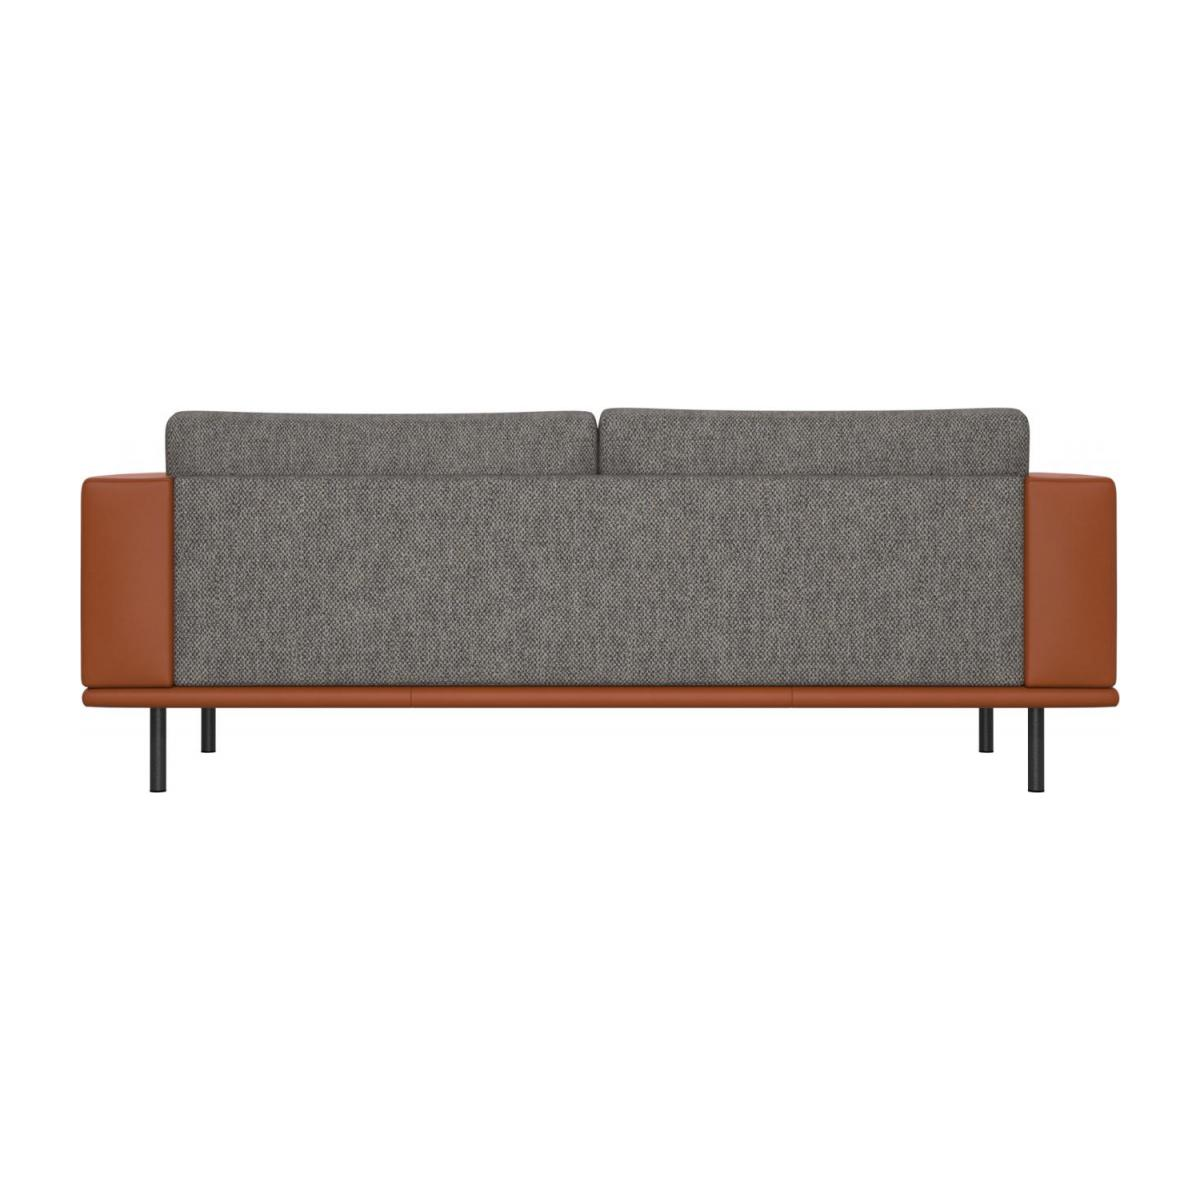 3 seater sofa in Bellagio fabric, night black with base and armrests in brown leather n°3